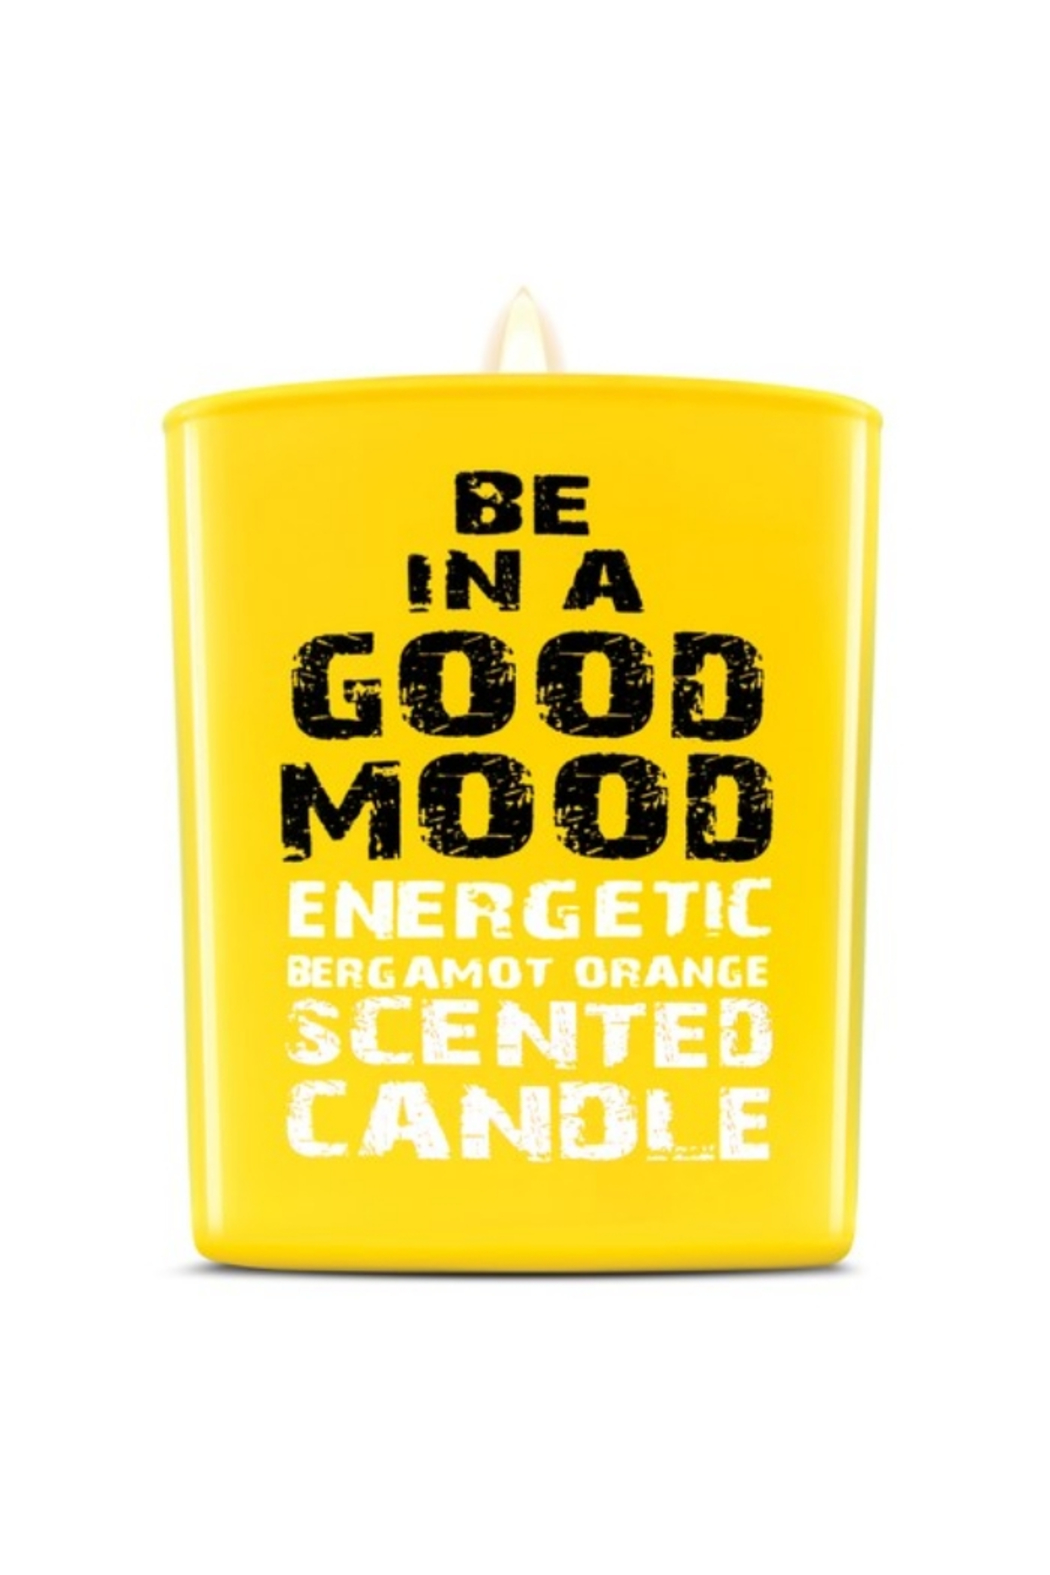 be in a good mood BE IN A GOOD MOOD Energetic Bergamot Orange Scented Candle - Front Cropped Image